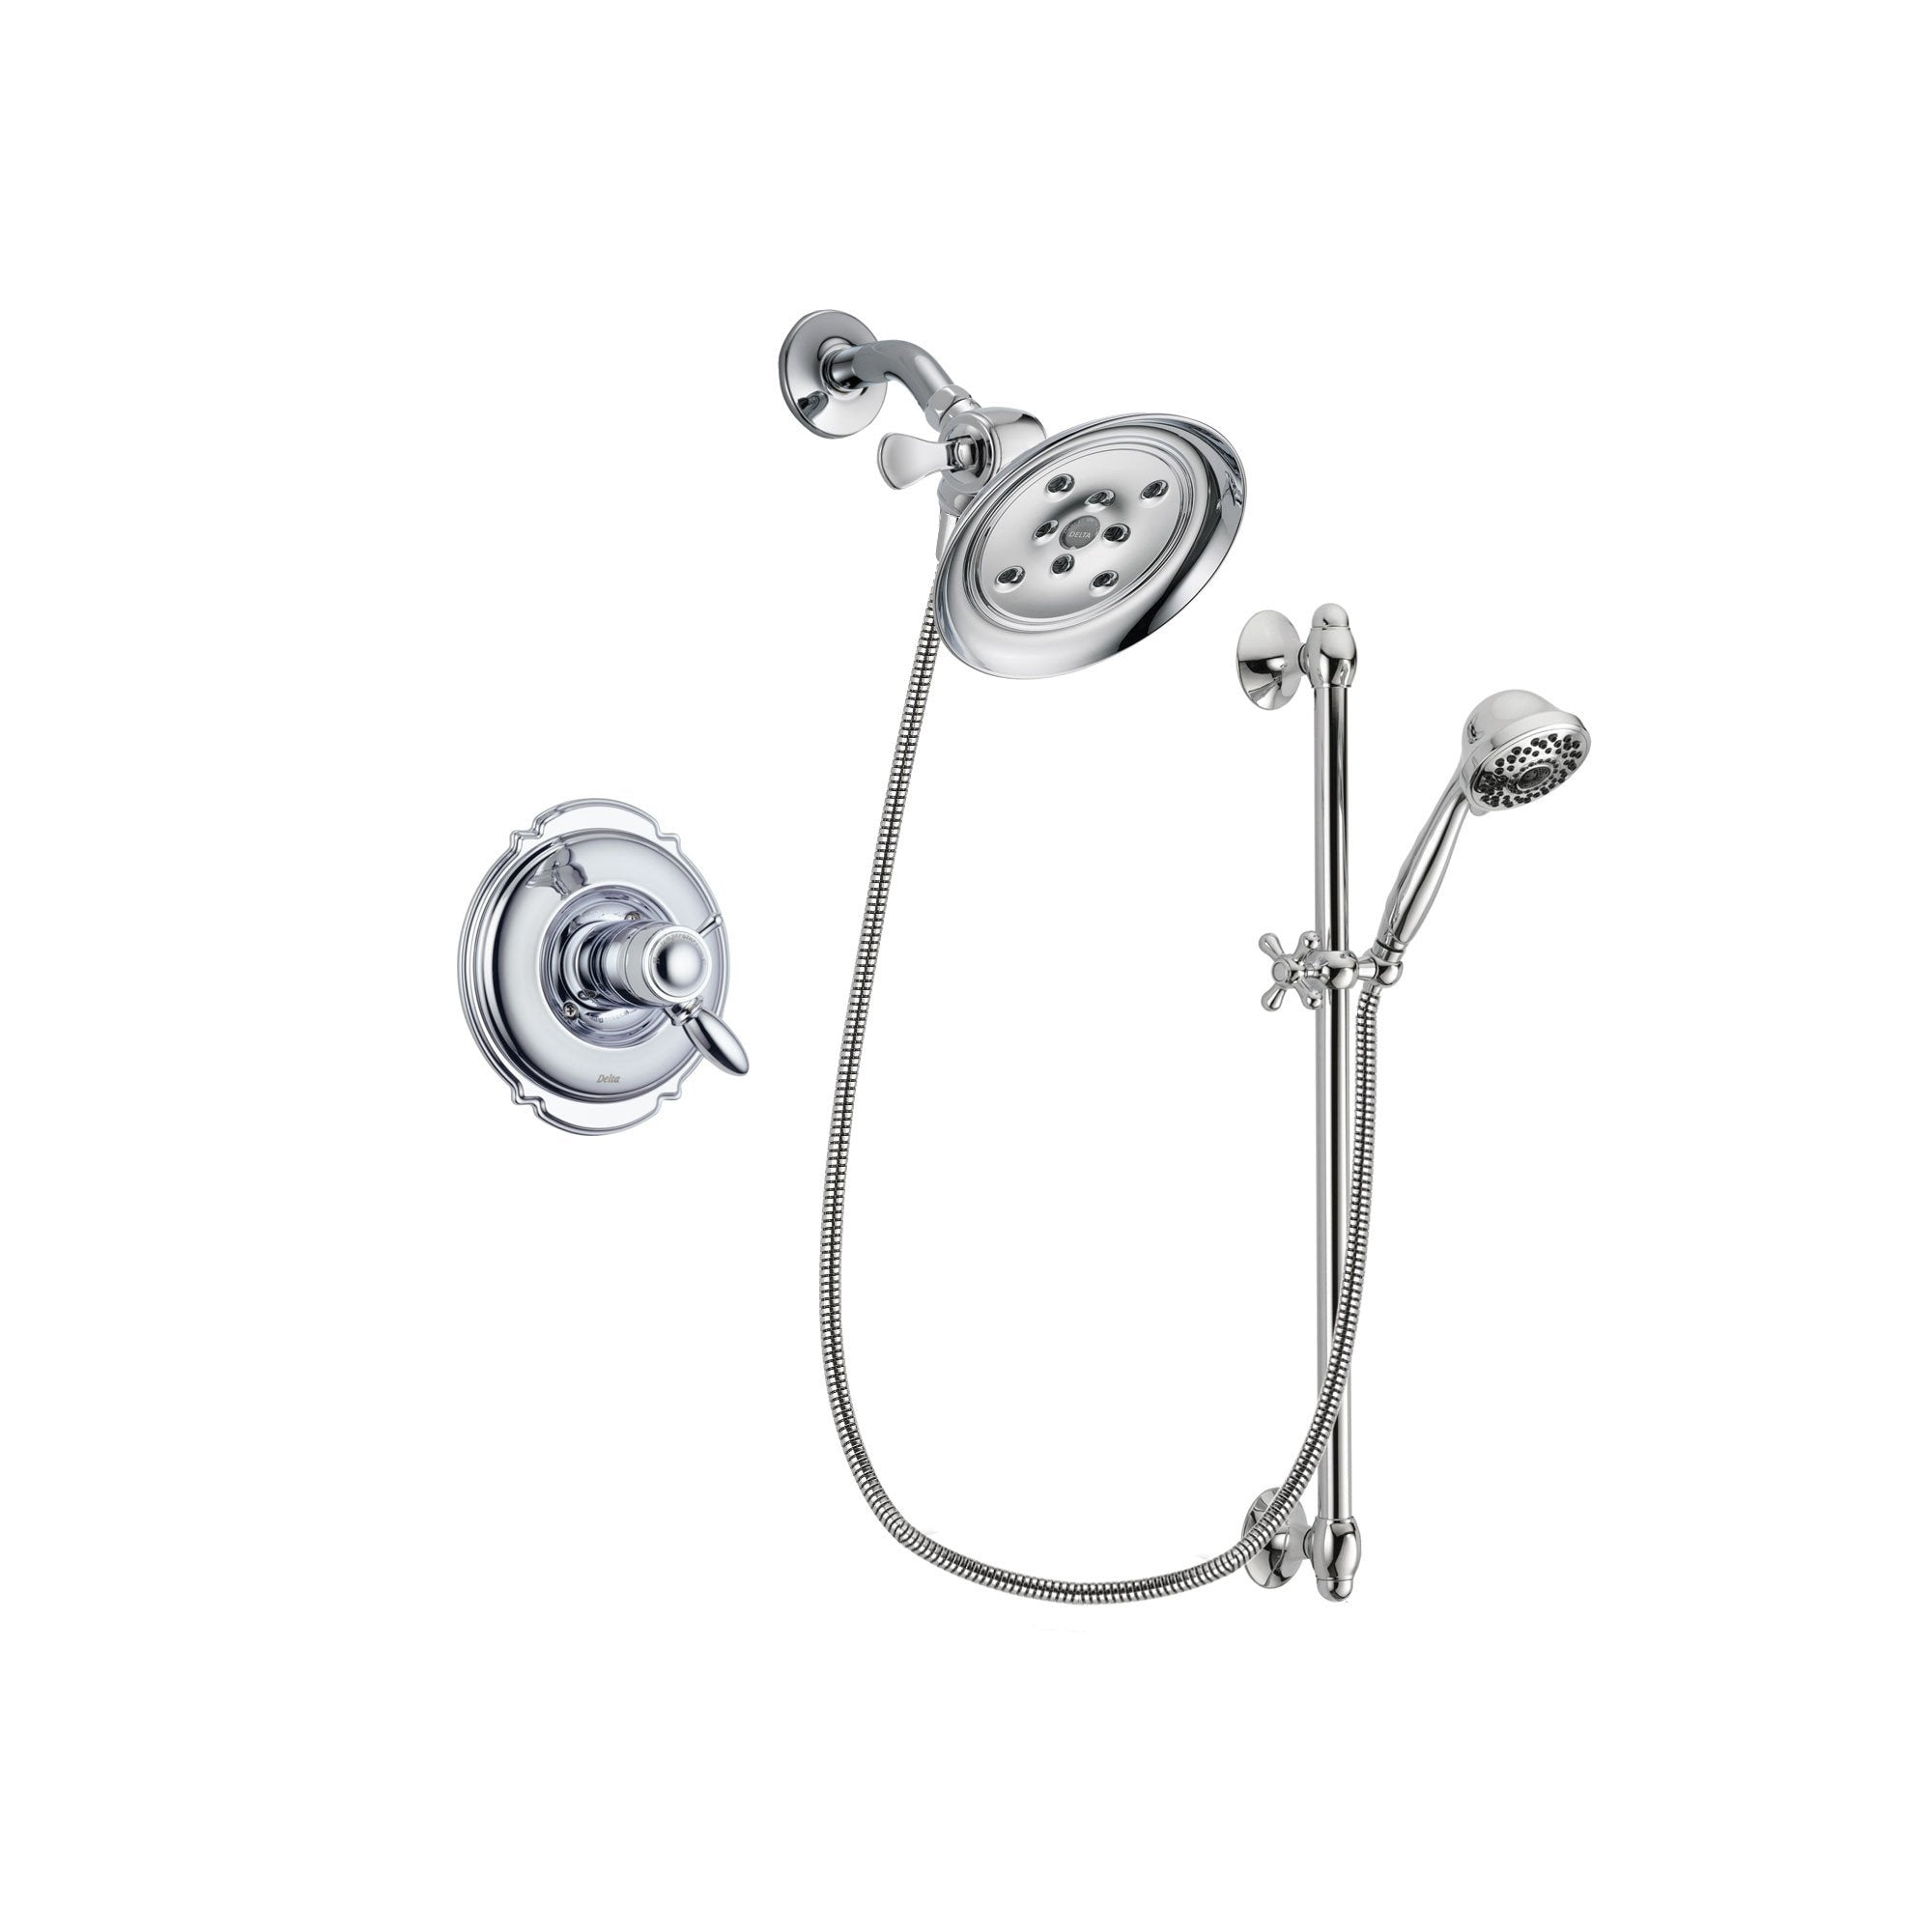 Delta Victorian Chrome Shower Faucet System Package with Hand Shower DSP0632V